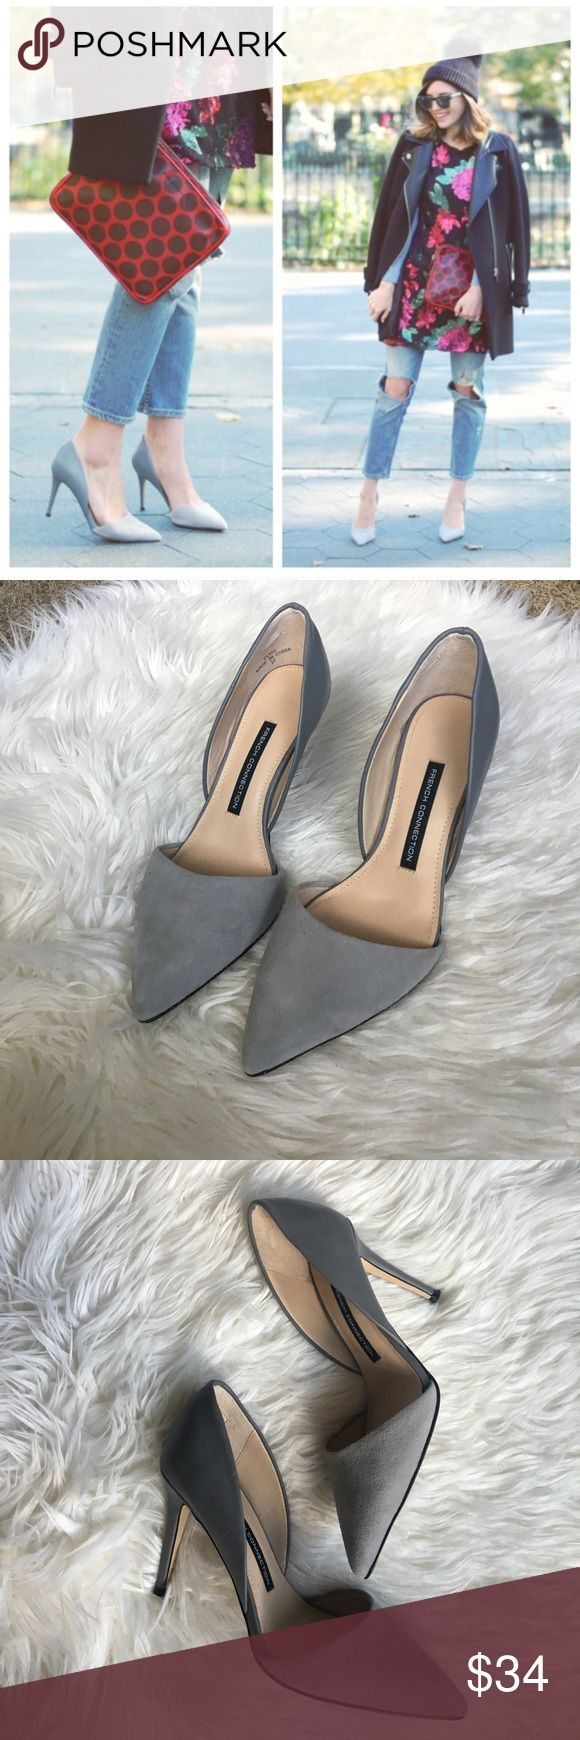 French Connection Elvia Grey D'orsay Pumps sz 7 Beautiful and sold out French Connection Elvia D'orsay Pumps in grey suede and leather size 37 (US 7)  Worn 3/4 times and in great condition! No trades please :) French Connection Shoes Heels